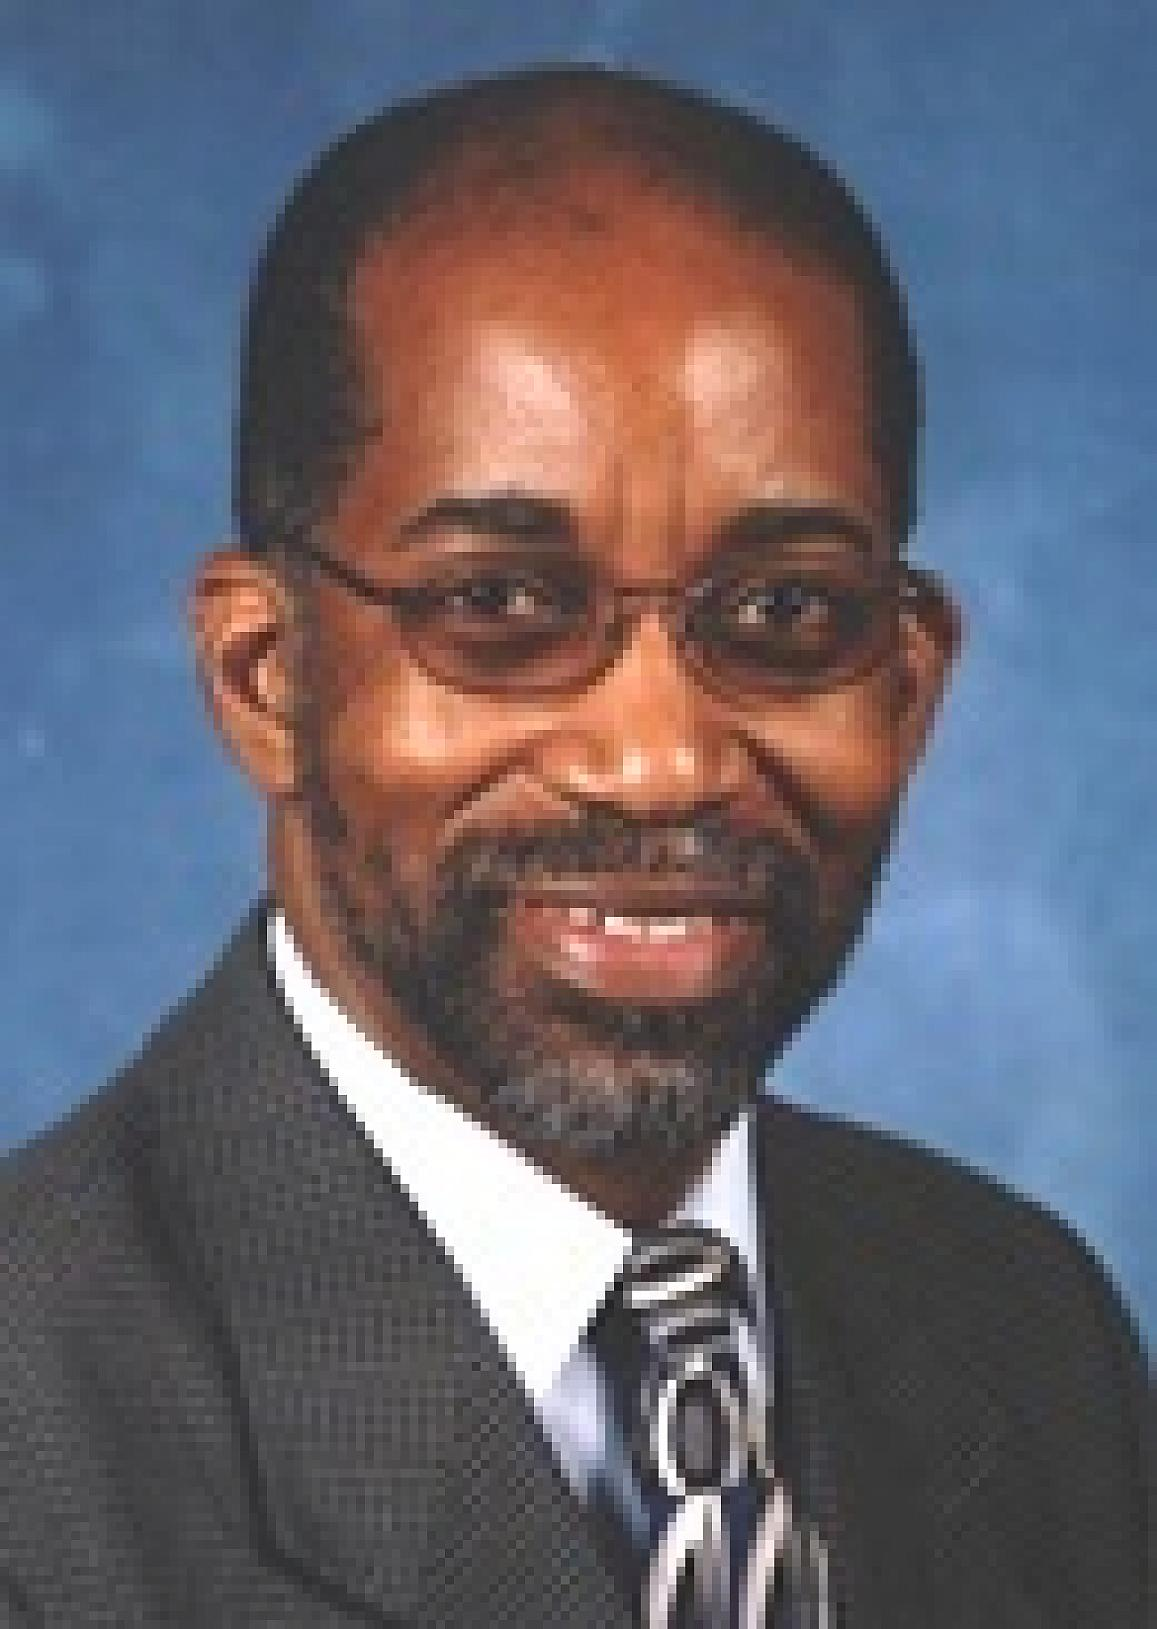 David Williams, Ph.D., M.P.H.